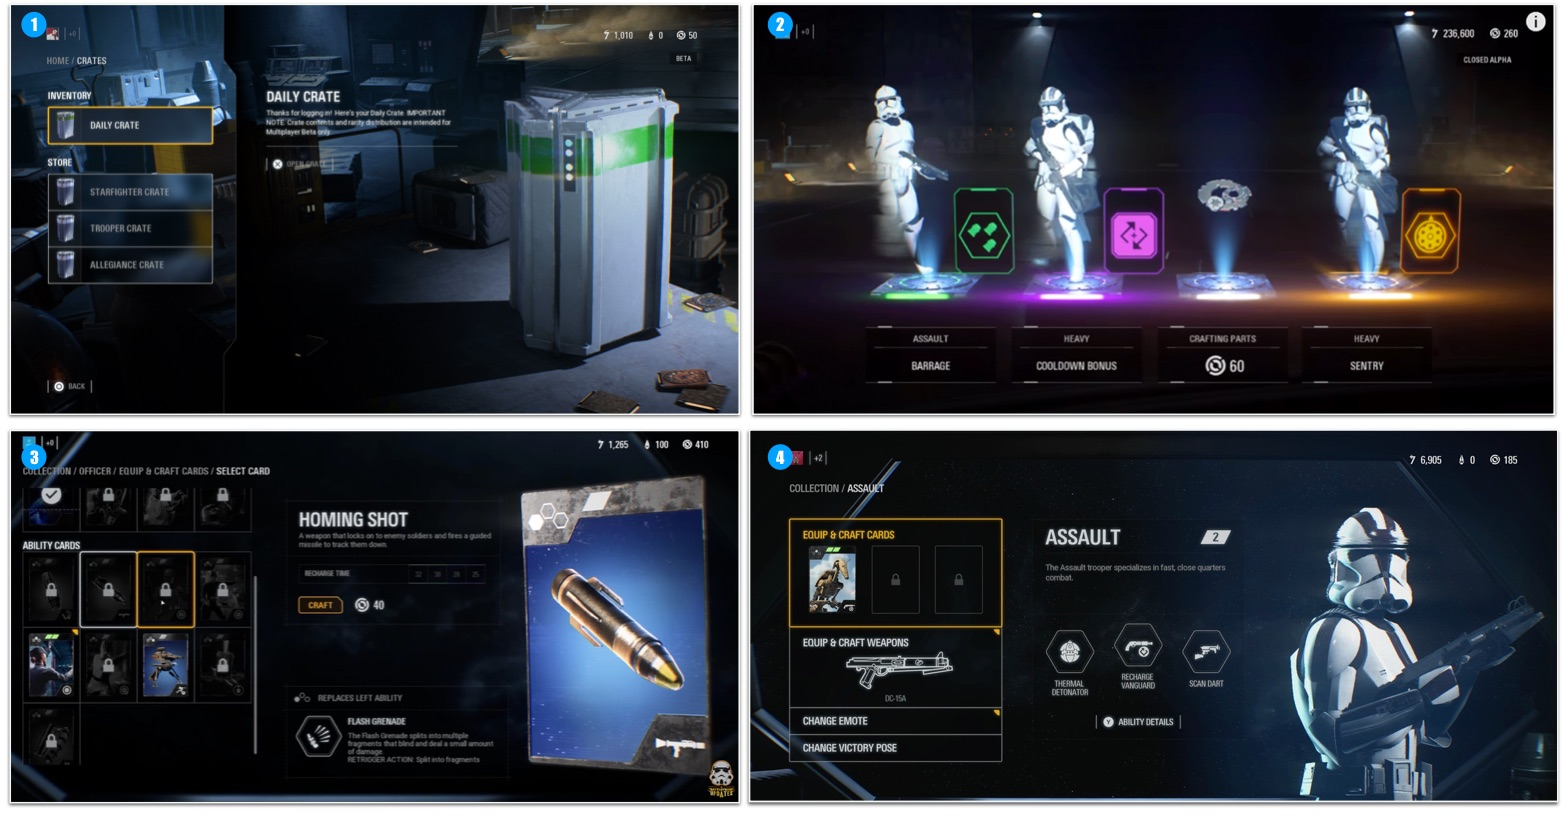 The progression design in a nutshell: Players earn Credits by playing matches. Credits are used to purchase Loot Crates. Loot Crates contain Star Cards. Star Cards are equipped on characters to boost or replace abilities. Star Card can be unlocked and upgraded with Crafting Parts.